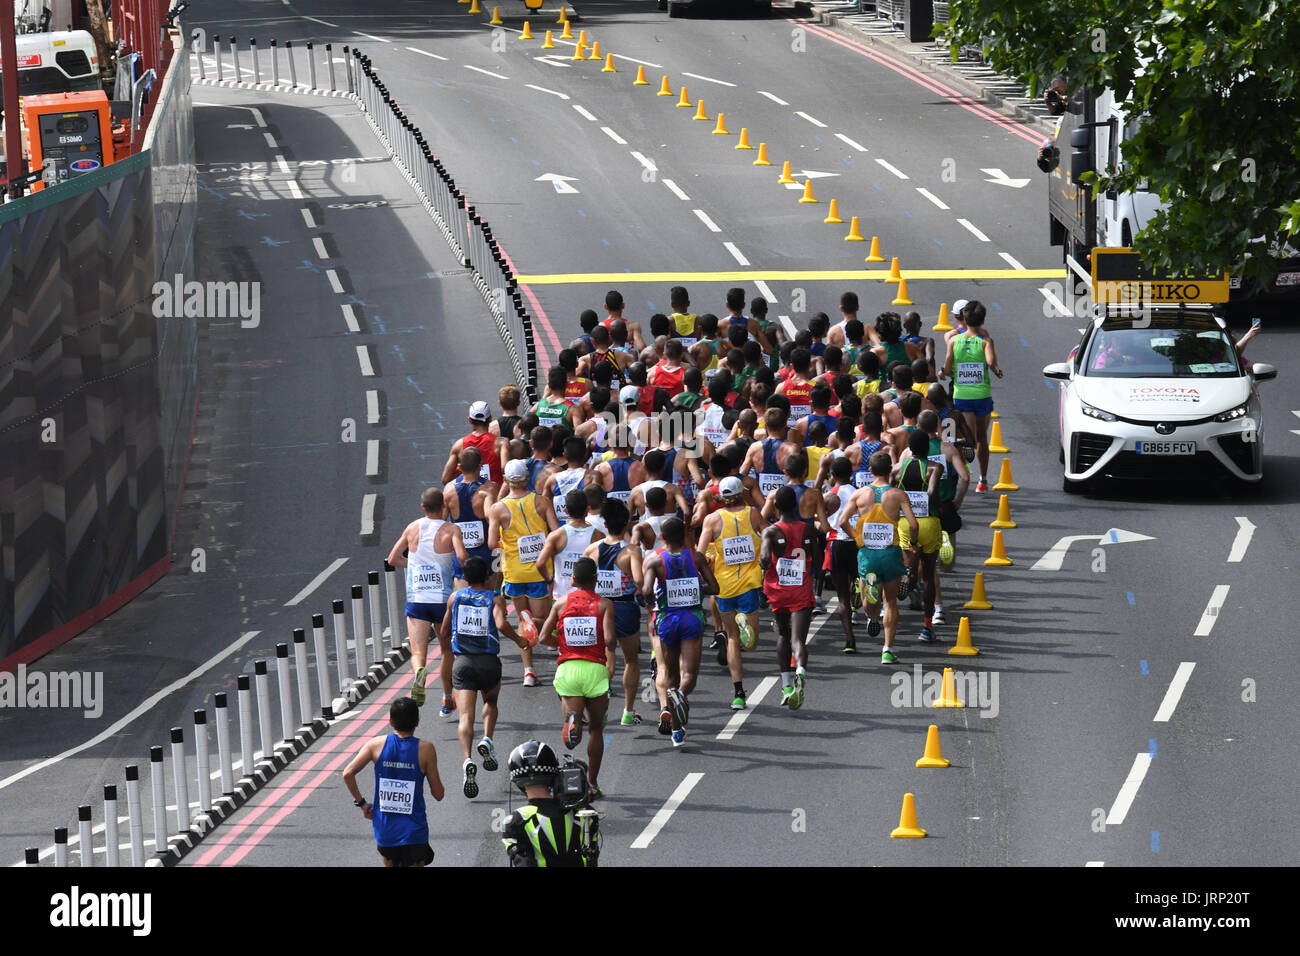 London, UK. 6th August 2017. IAAF World Championships.  Saturday. Mens Marathon through central London landmarks. On the Embankment. Credit: Matthew Chattle/Alamy Live News - Stock Image